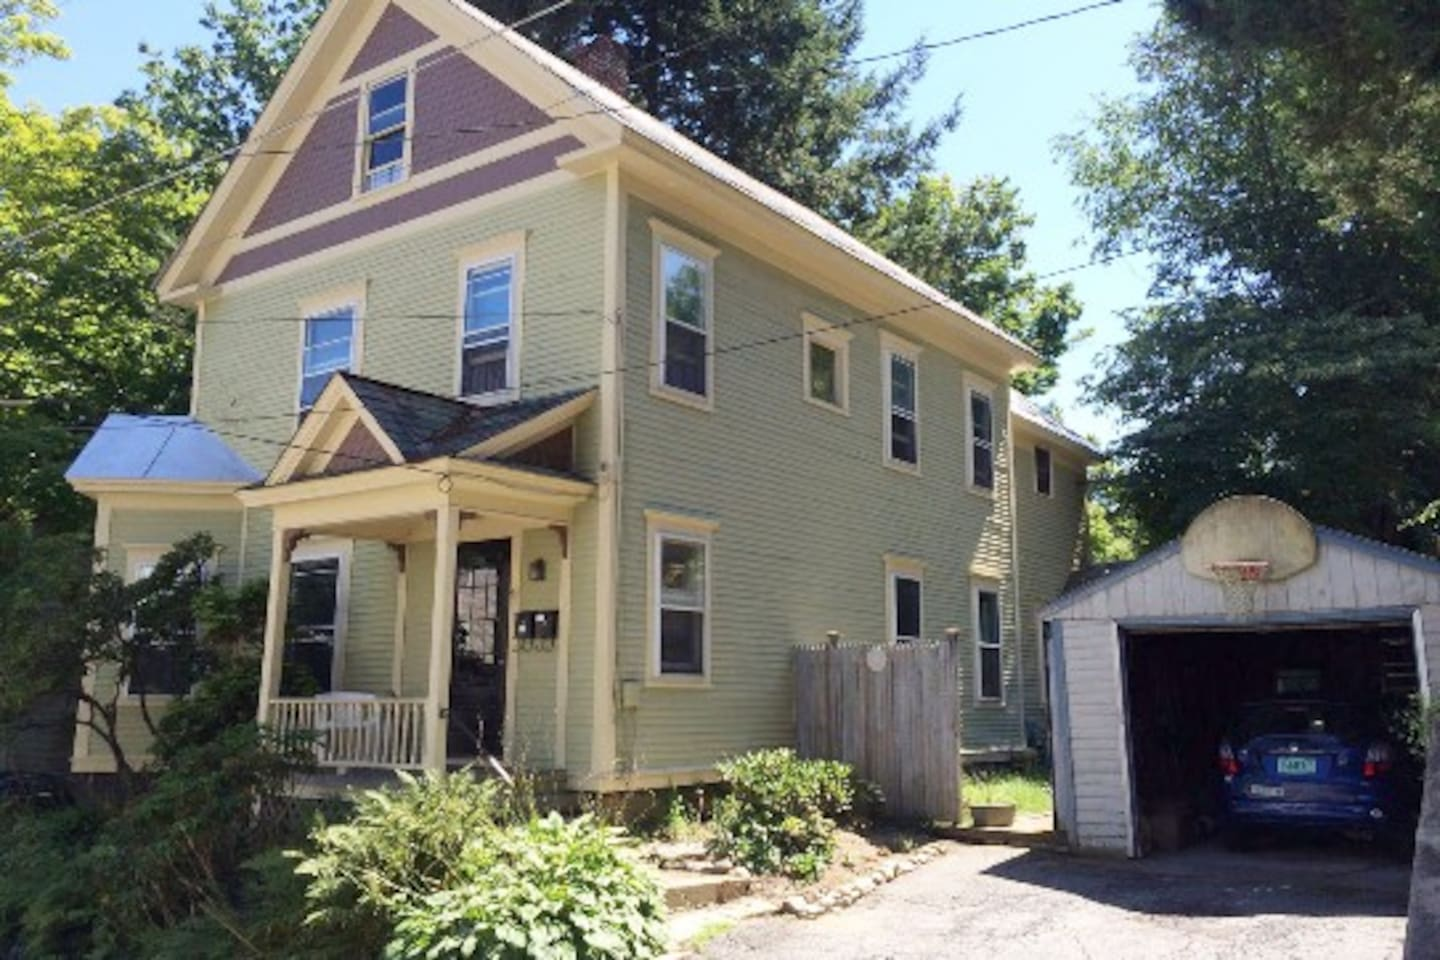 Home sweet home! Our New England Victorian was built in the 1870s and retains its original charm. Nestled in one of the most beautiful and historic neighborhoods in Brattleboro: only a few blocks to downtown, the train station, bars and restaurants!